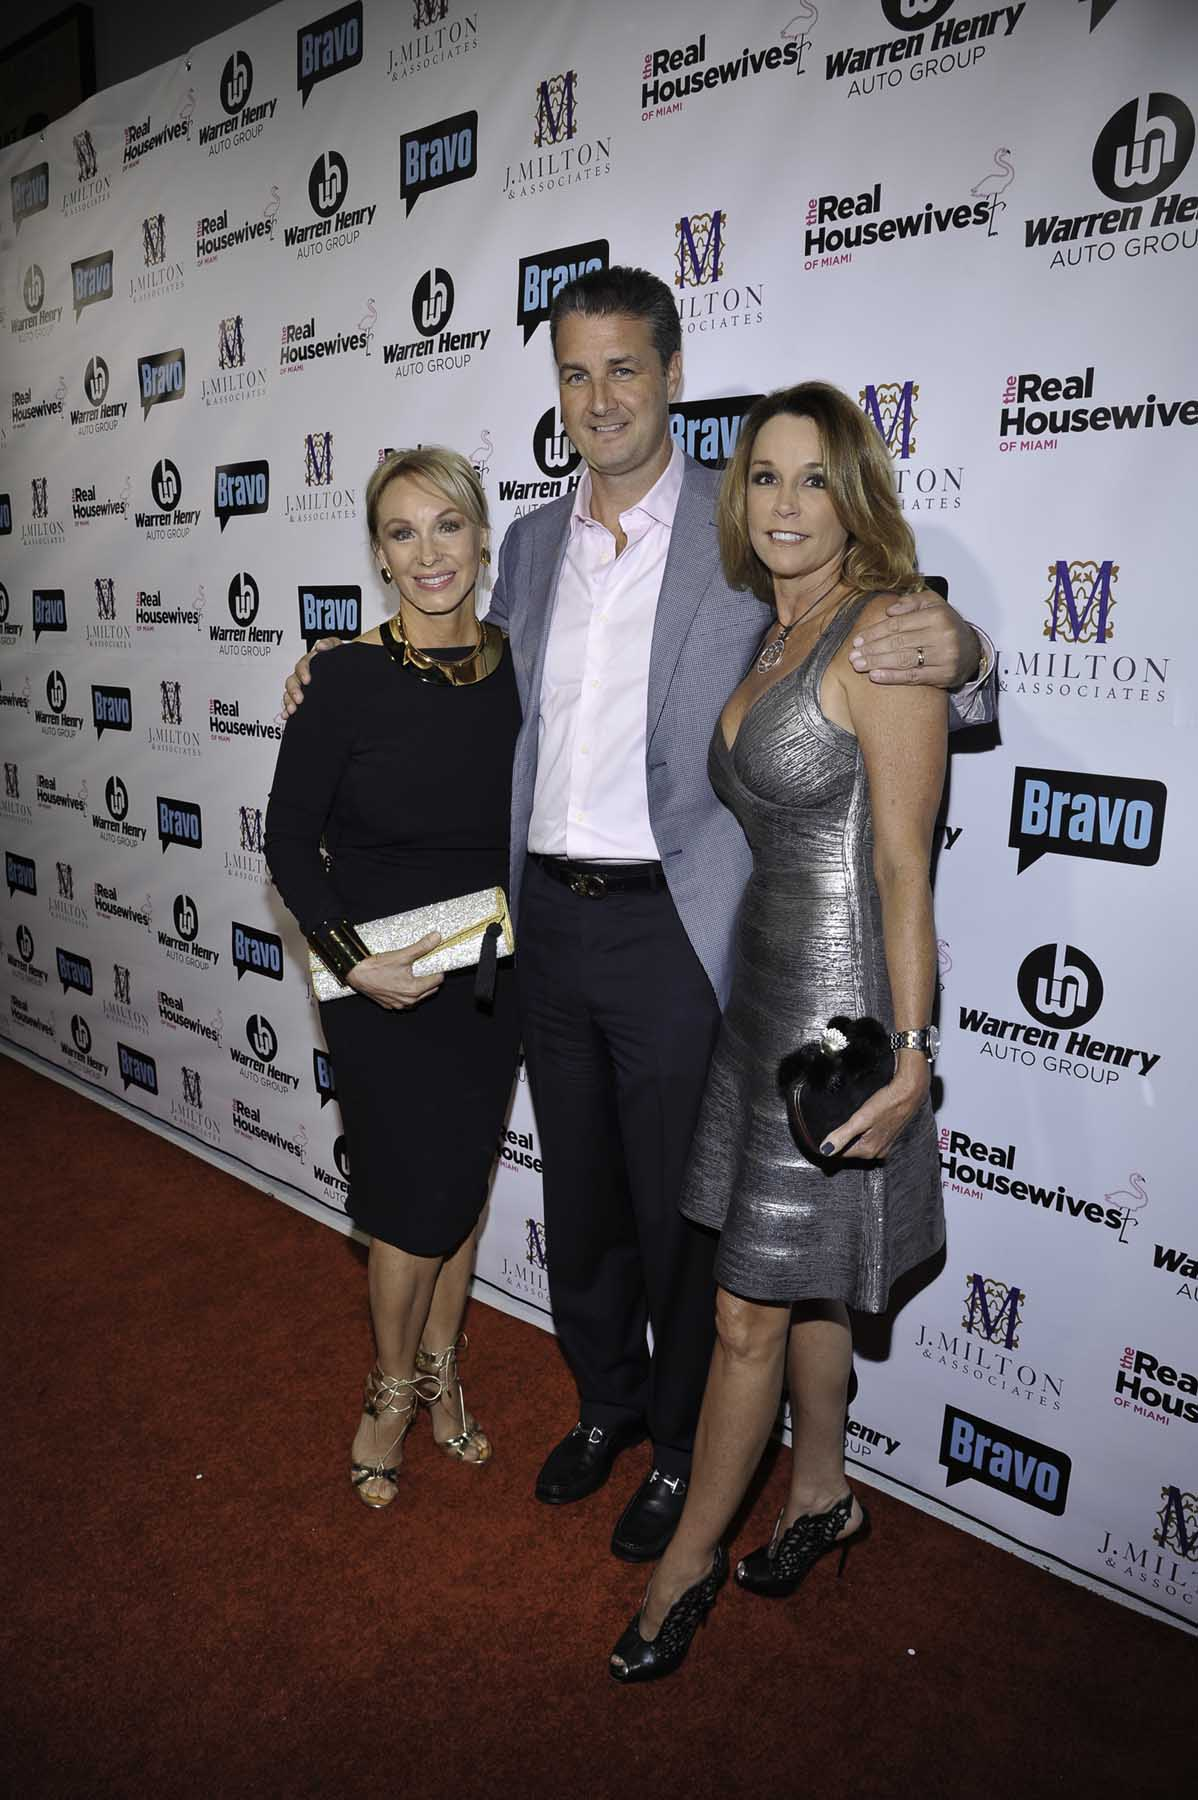 Lea Black of The Real Housewives of Miami – Season 3; Erik Day, Vice President and CFO of Warren Henry Auto Group; and Gina Milton, Executive Vice President of J. Milton & Associates